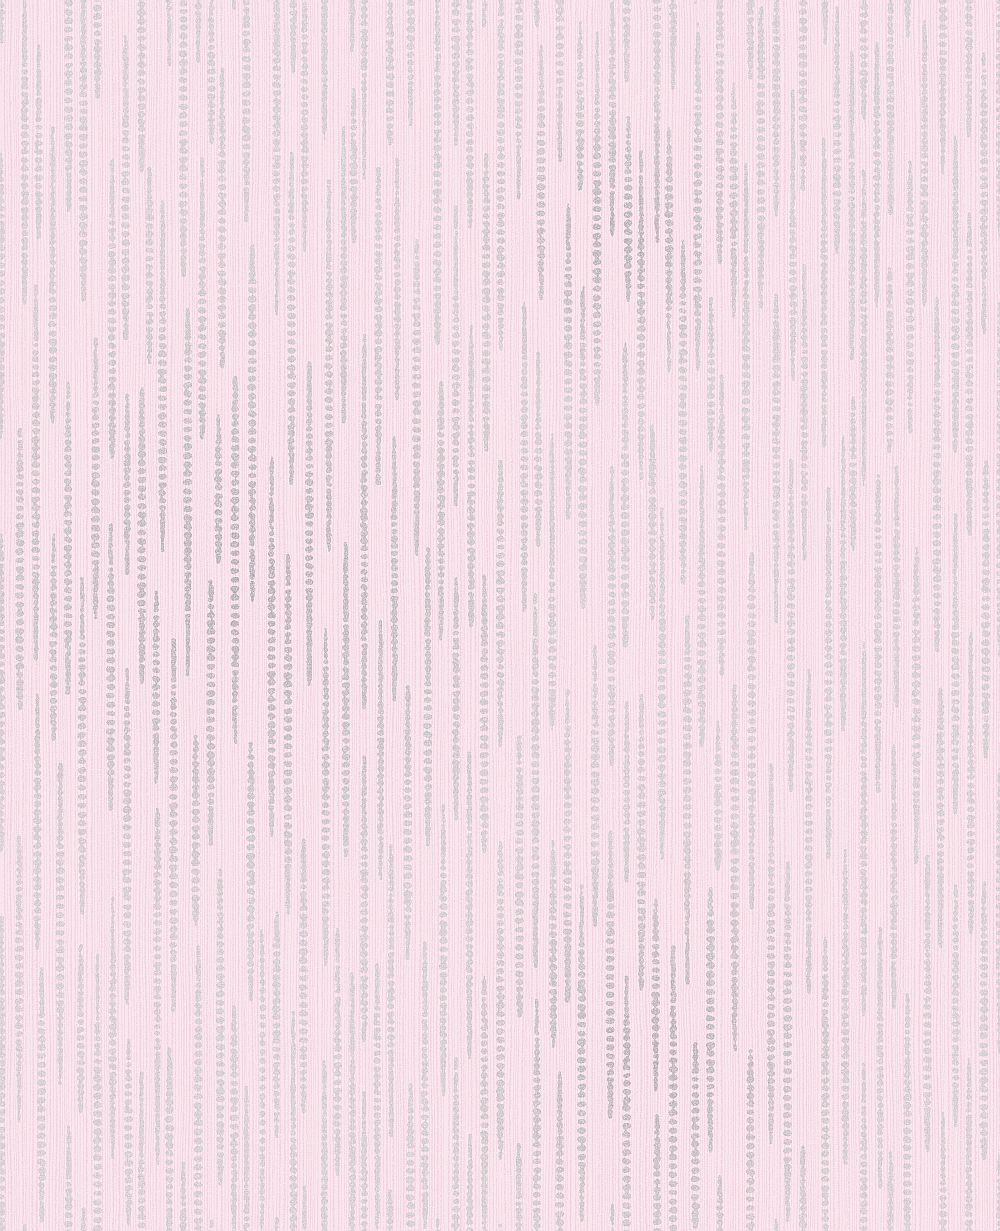 Albany Dotted Stripe Pink Wallpaper - Product code: DL40789